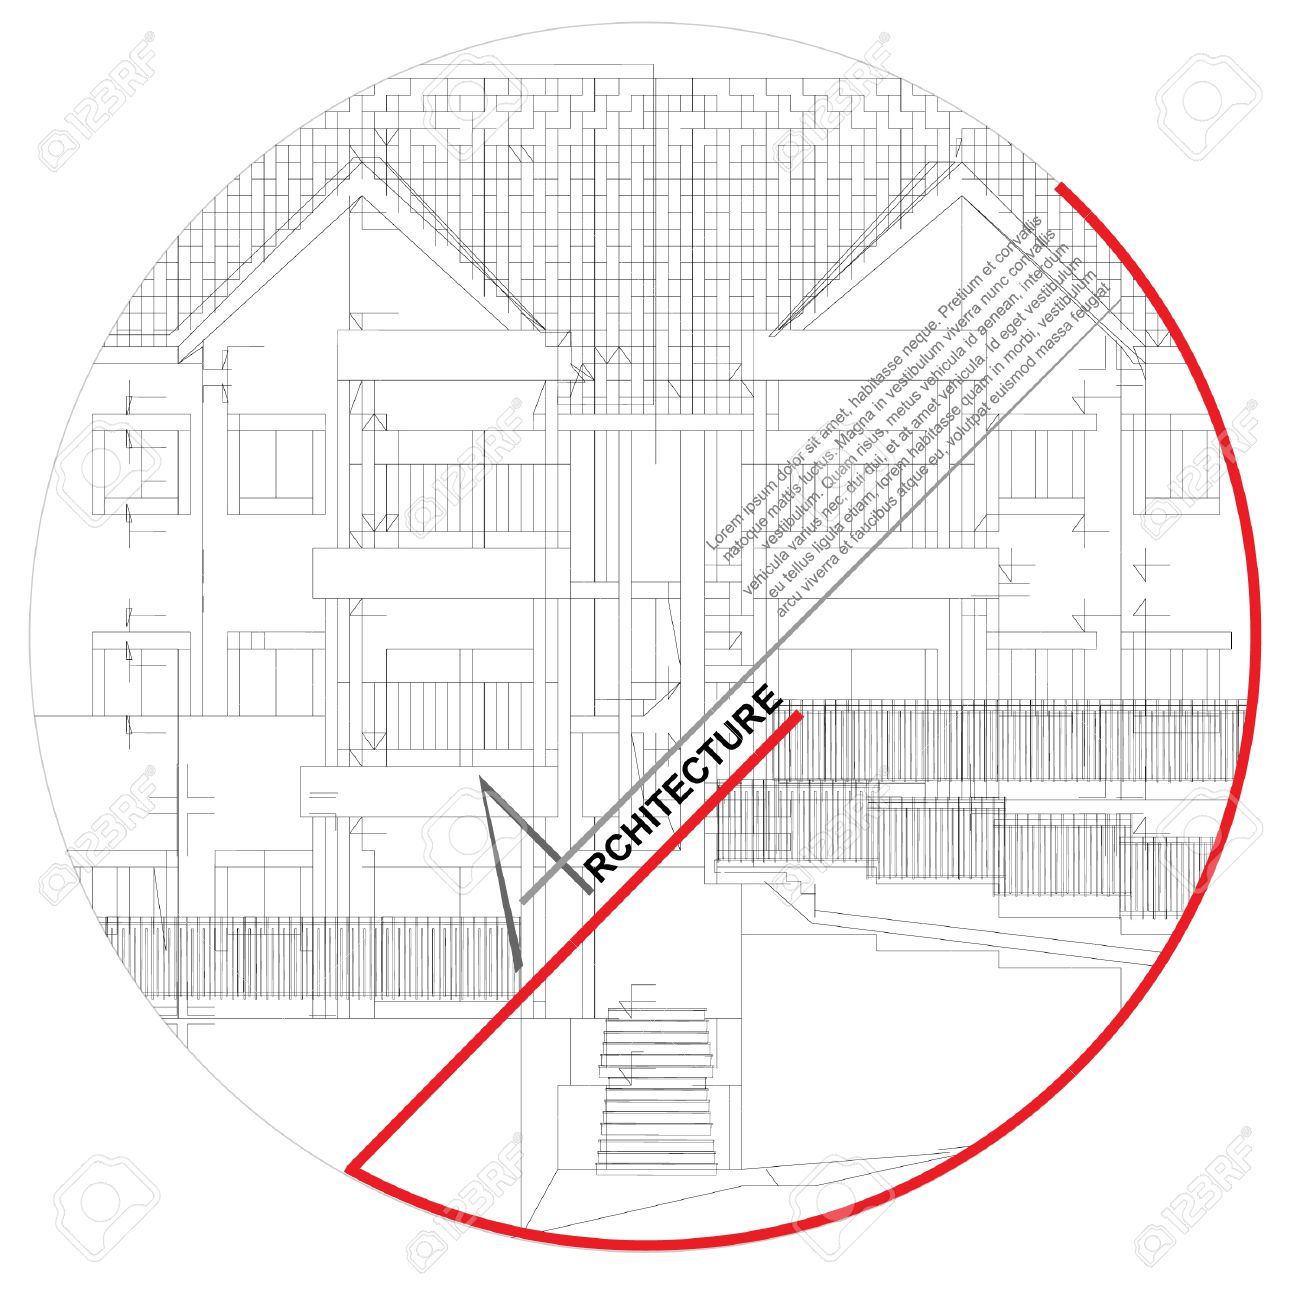 Architectural background  Part of architectural project, architectural plan, technical project, drawing technical letters, architect at work, architecture planning on paper, construction plan Stock Vector - 13914102